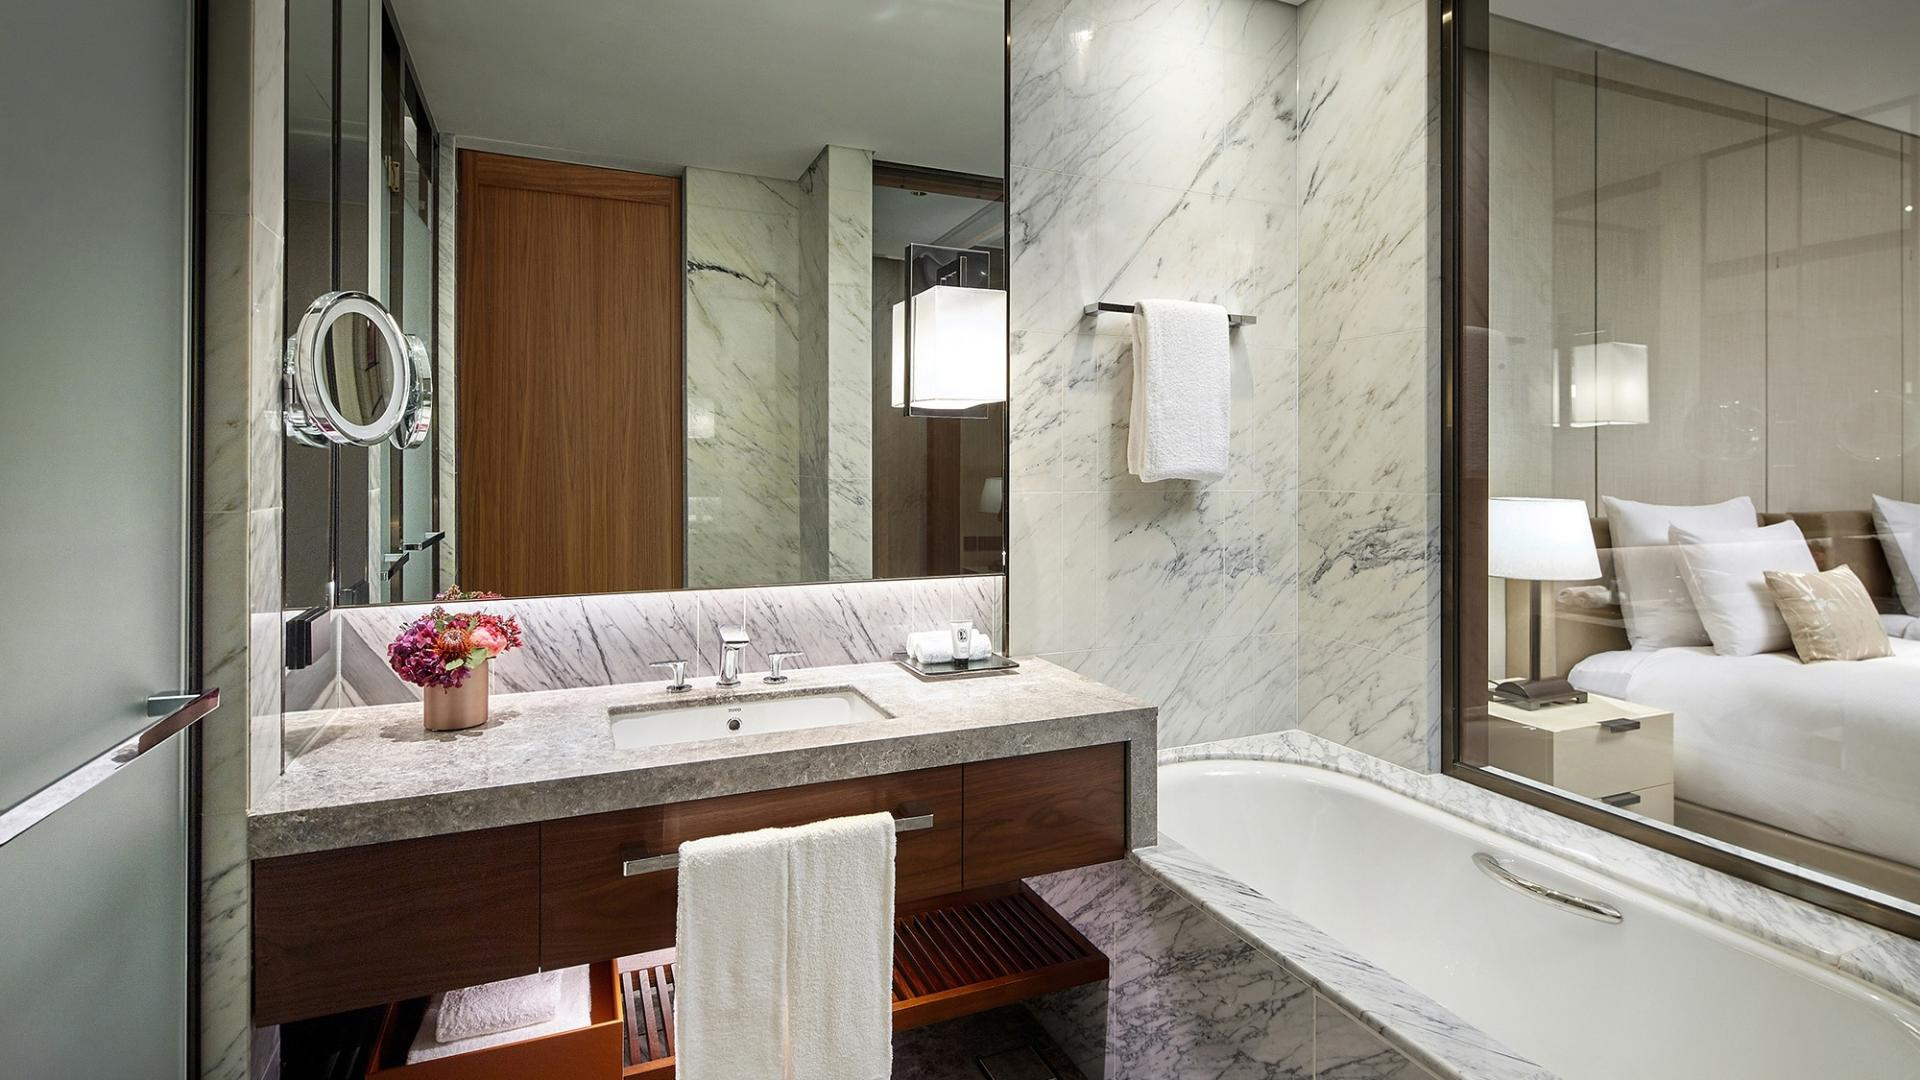 Executive Tower Grand Deluxe Bath Room